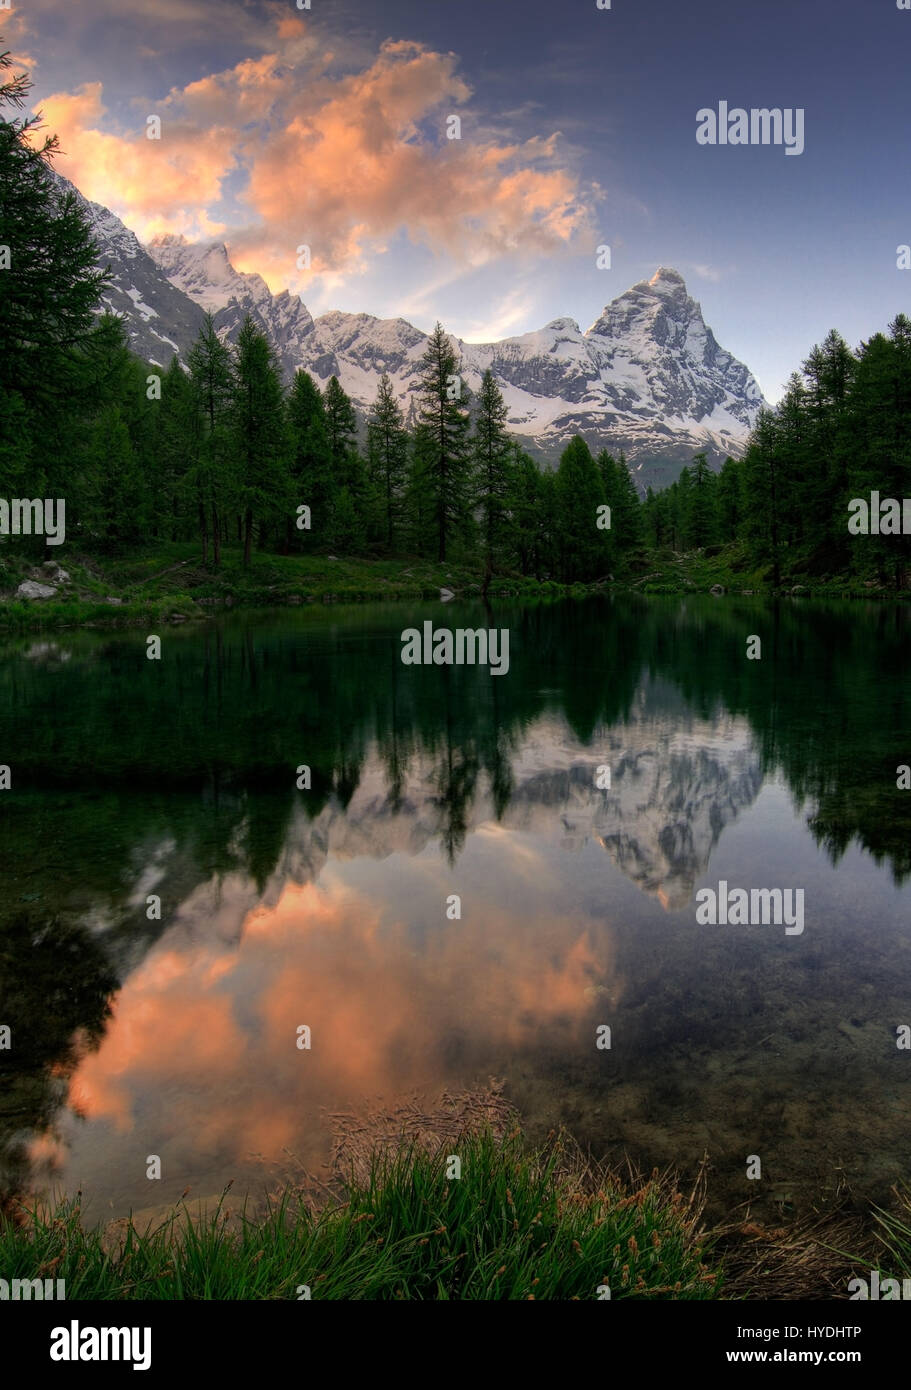 The Cervino - better known as Matterhorn outside Italy - and the tiny Lago Blu at sunset. Near to Breuil-Cervinia - Stock Image